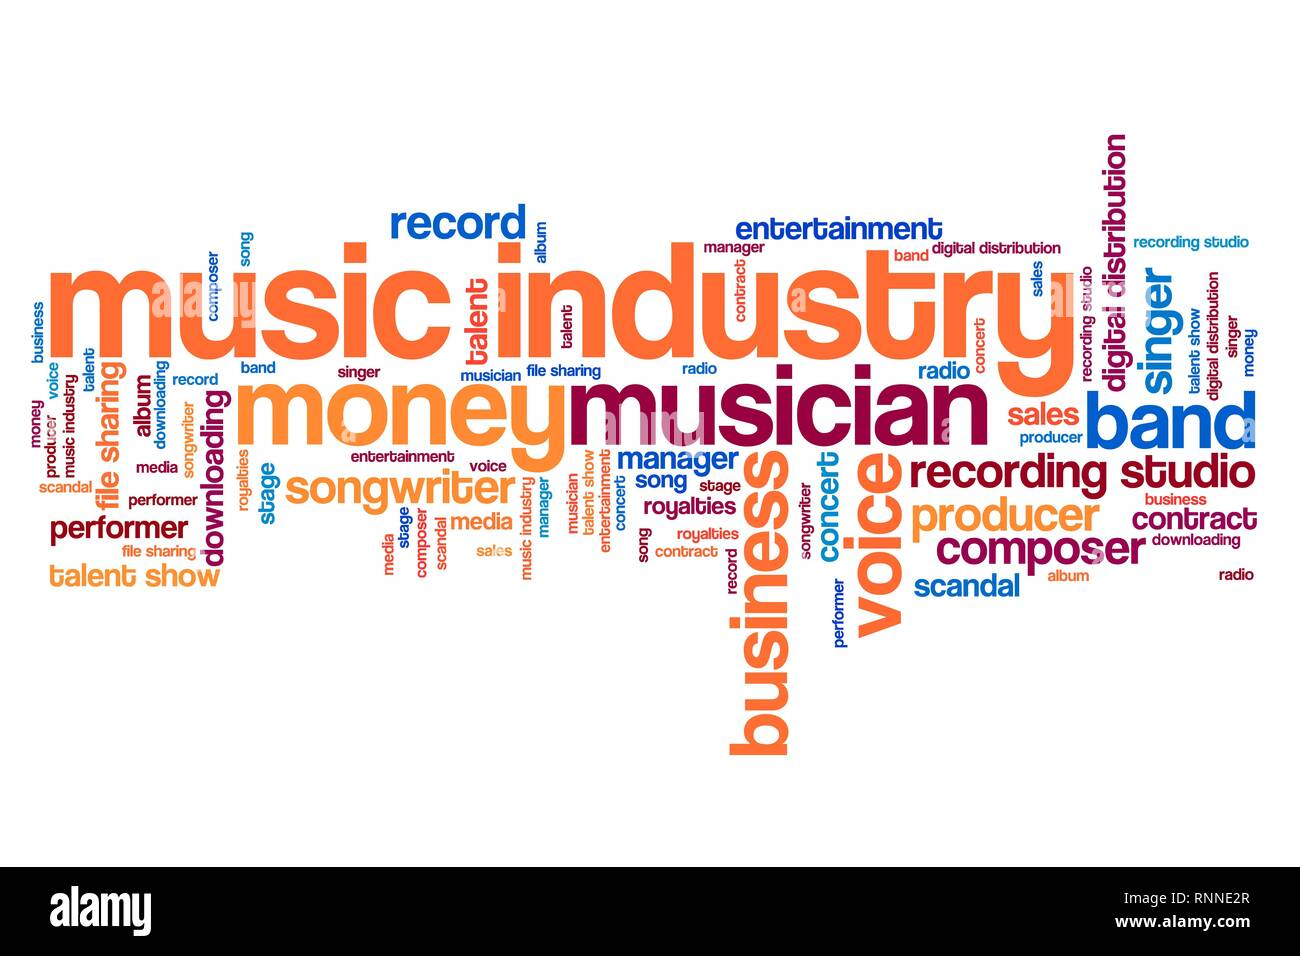 music industry issues 2019